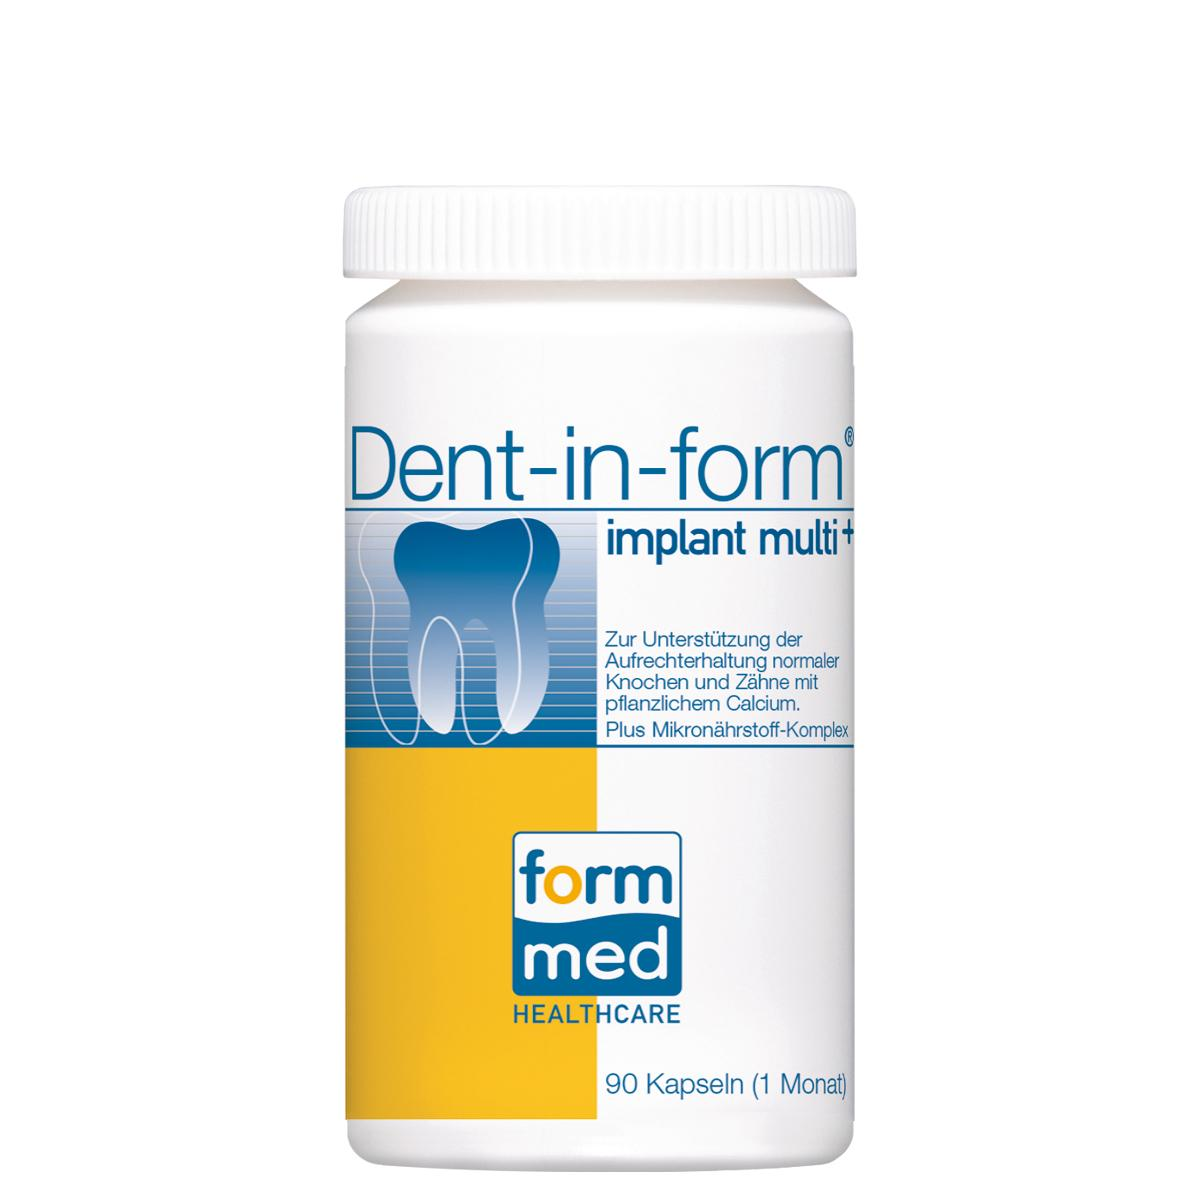 Dent-in-form® implant multi+